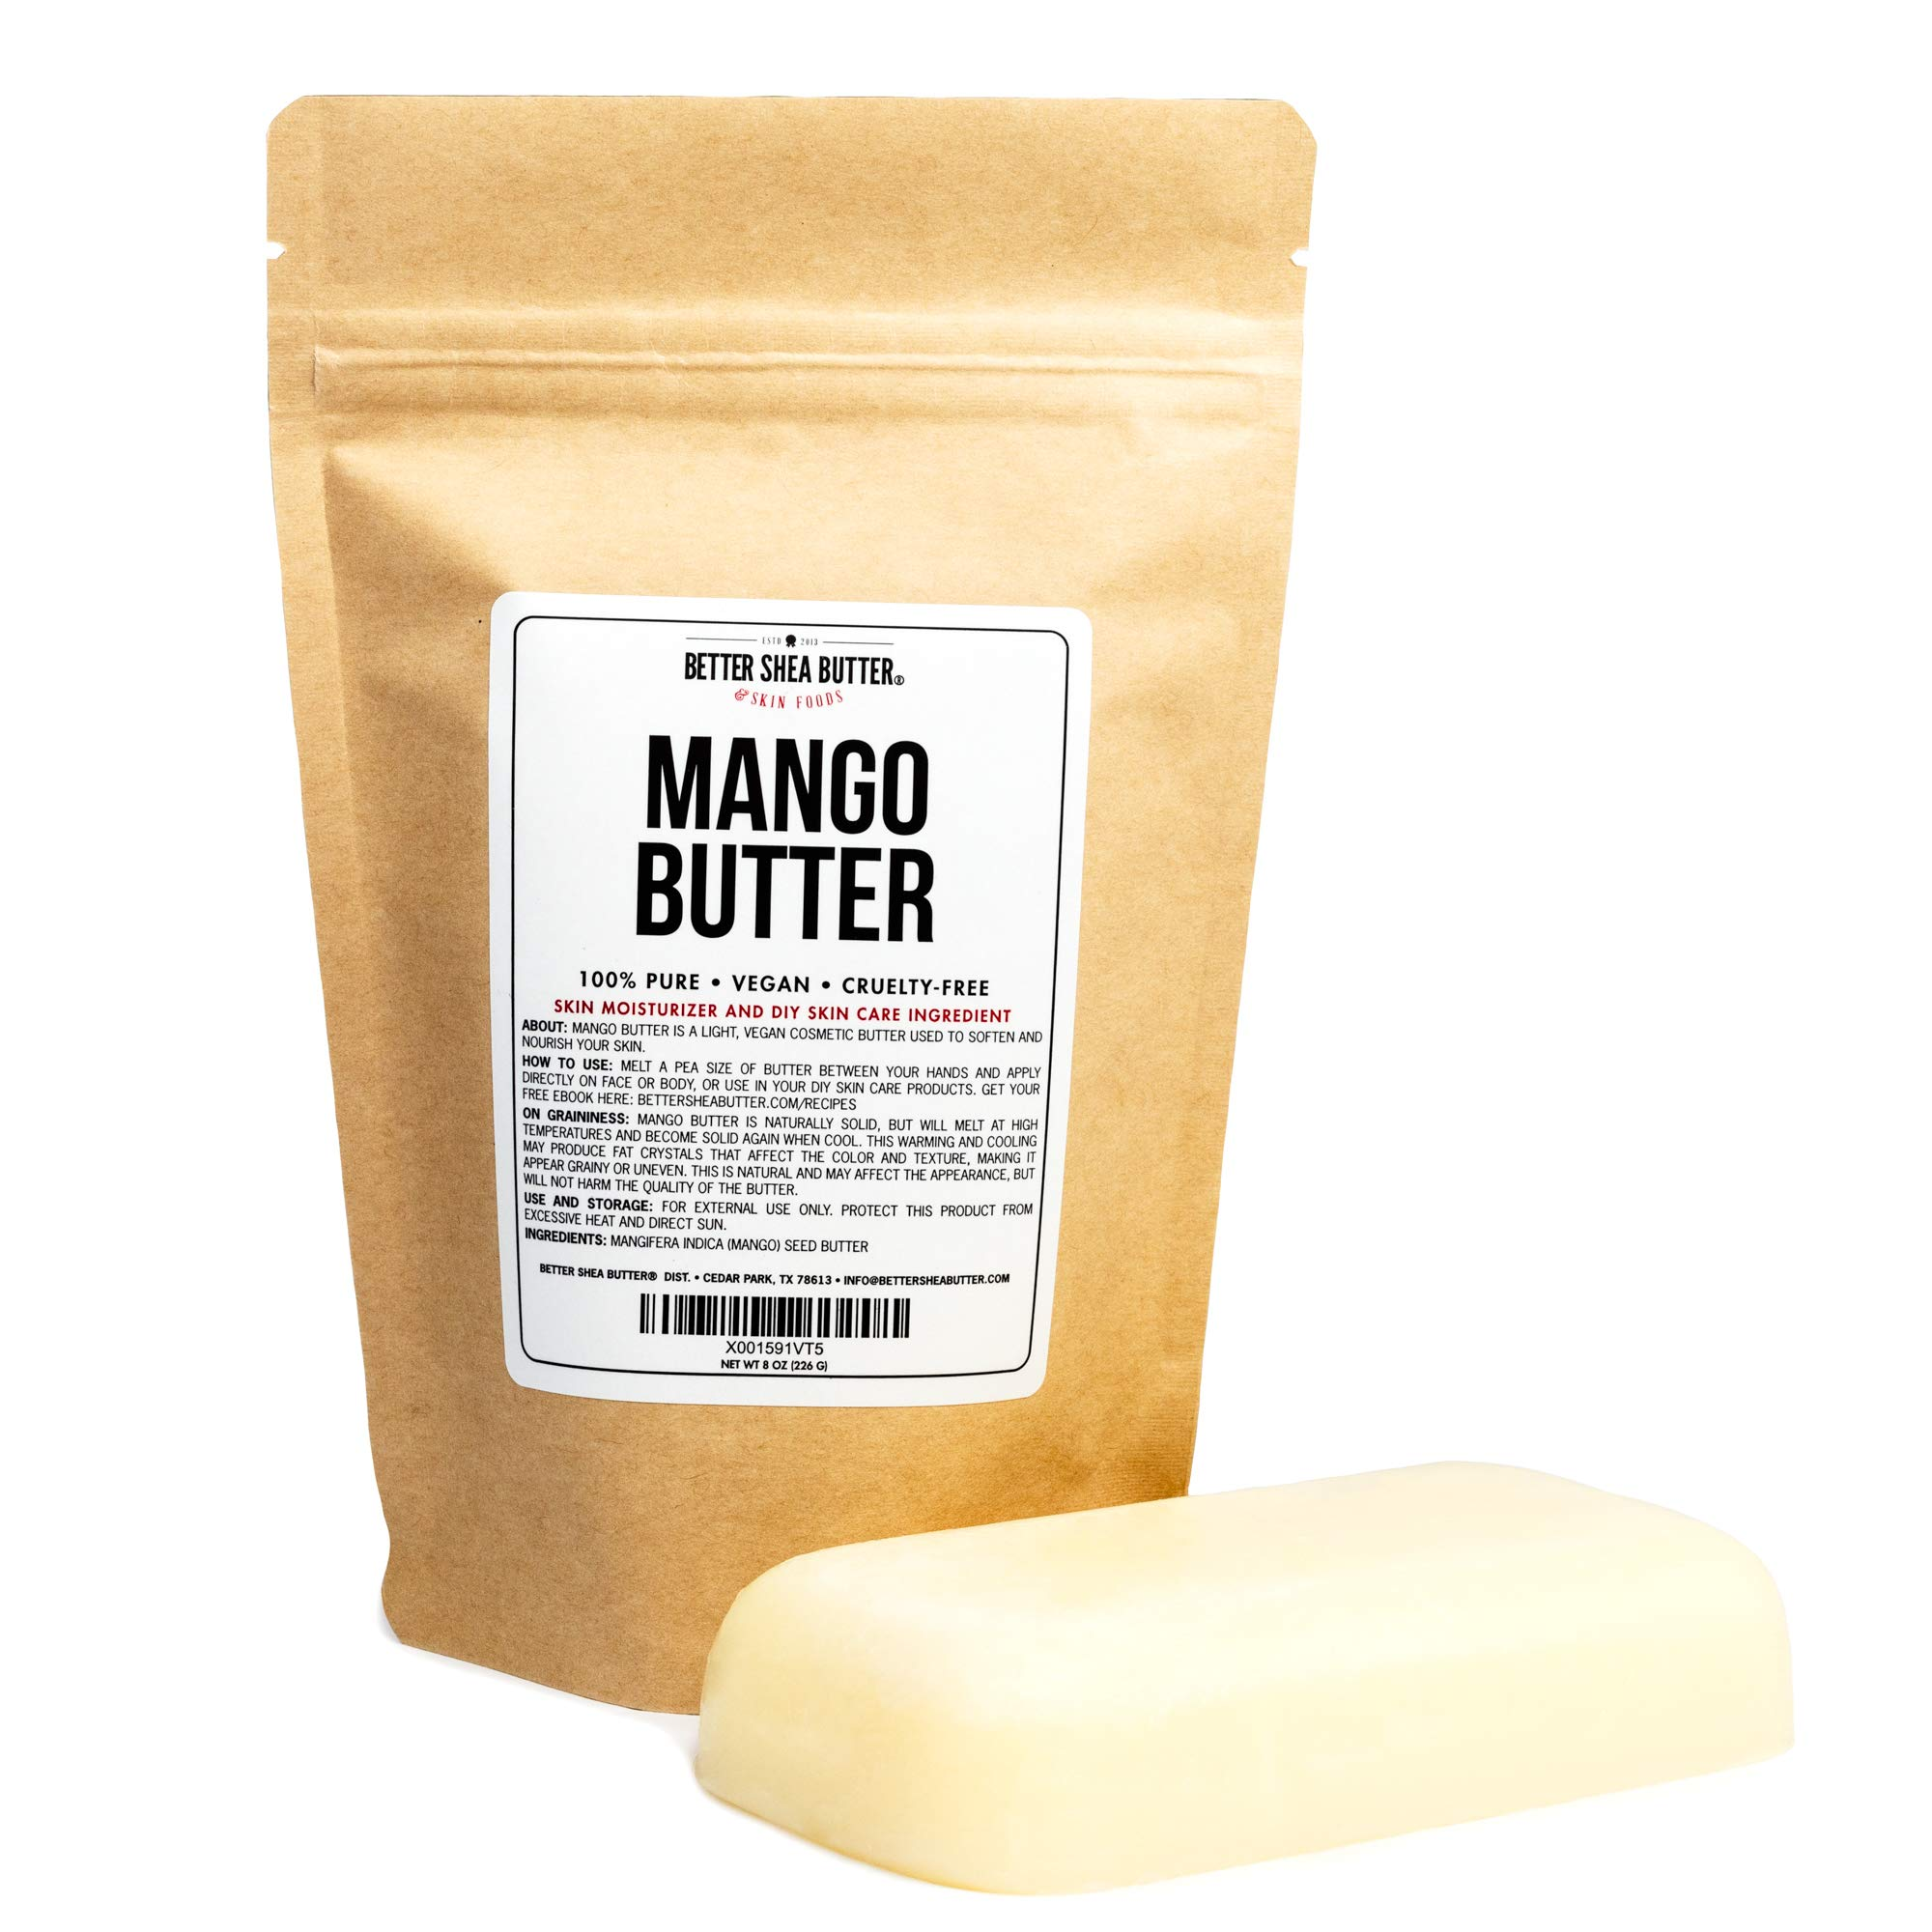 100% Pure Mango Butter - Can Substitute Shea Butter in Soap and Lotion Recipes - Moisturizing, Scent-free, Hexane-free - 8 oz by Better Shea Butter by Better Shea Butter